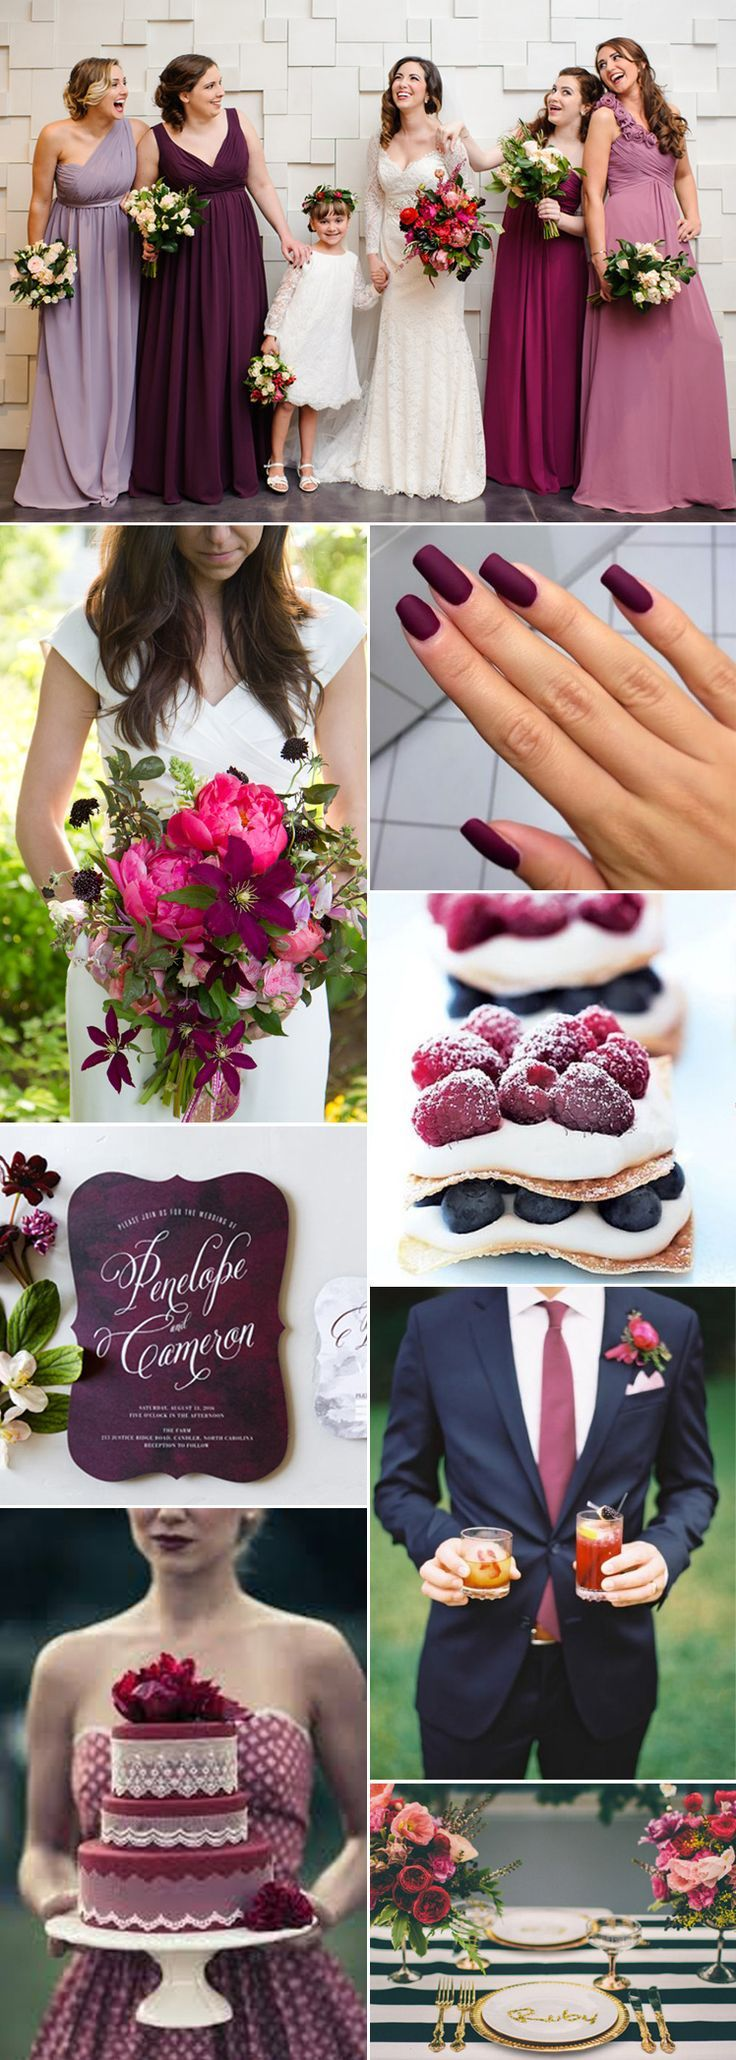 25 best ideas about purple summer wedding on pinterest for Wedding color scheme ideas